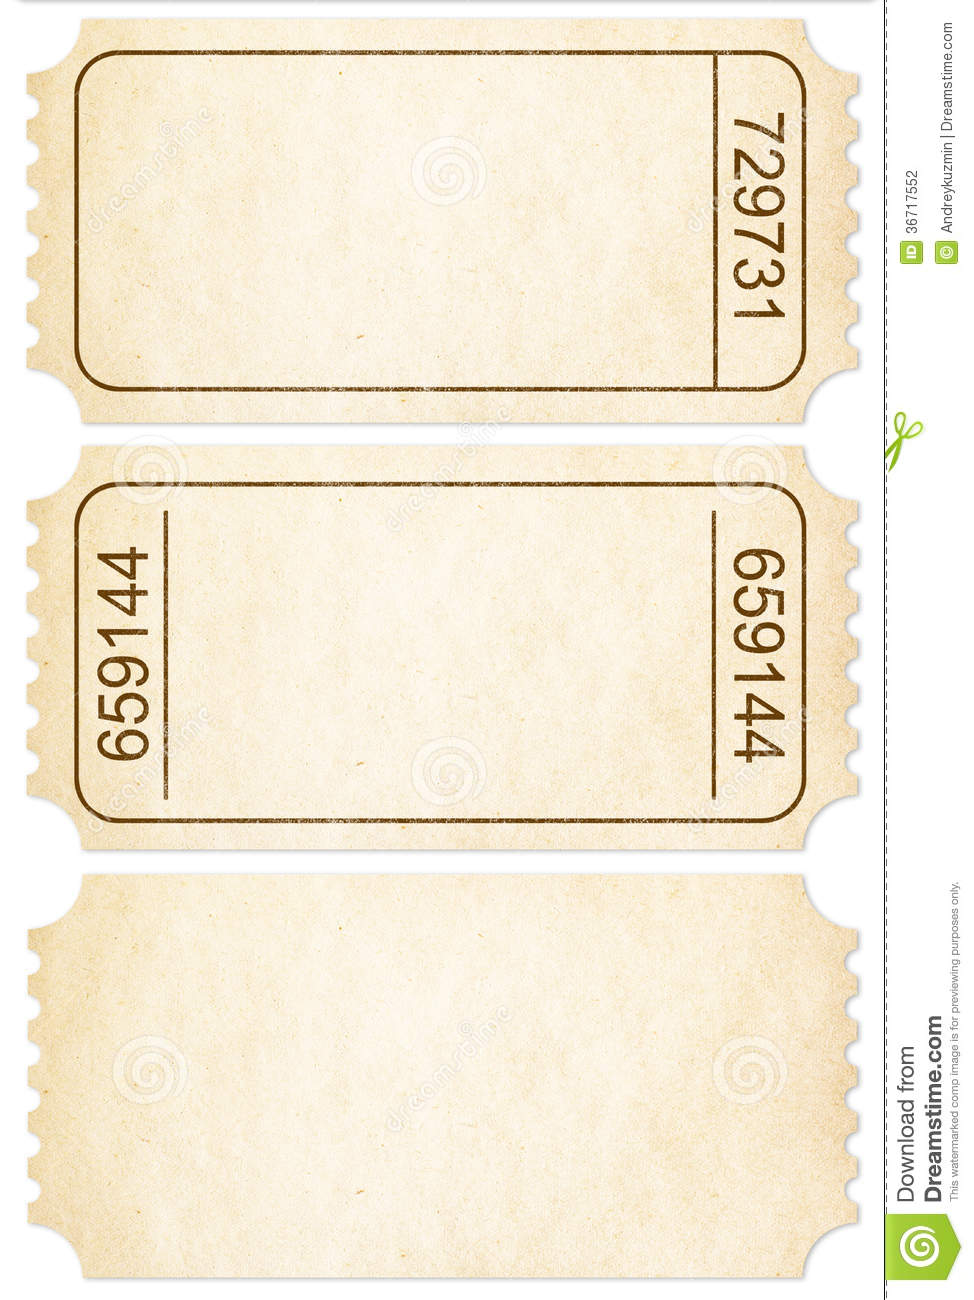 Ticket Set Paper Ticket Stubs Isolated With Clipping Path